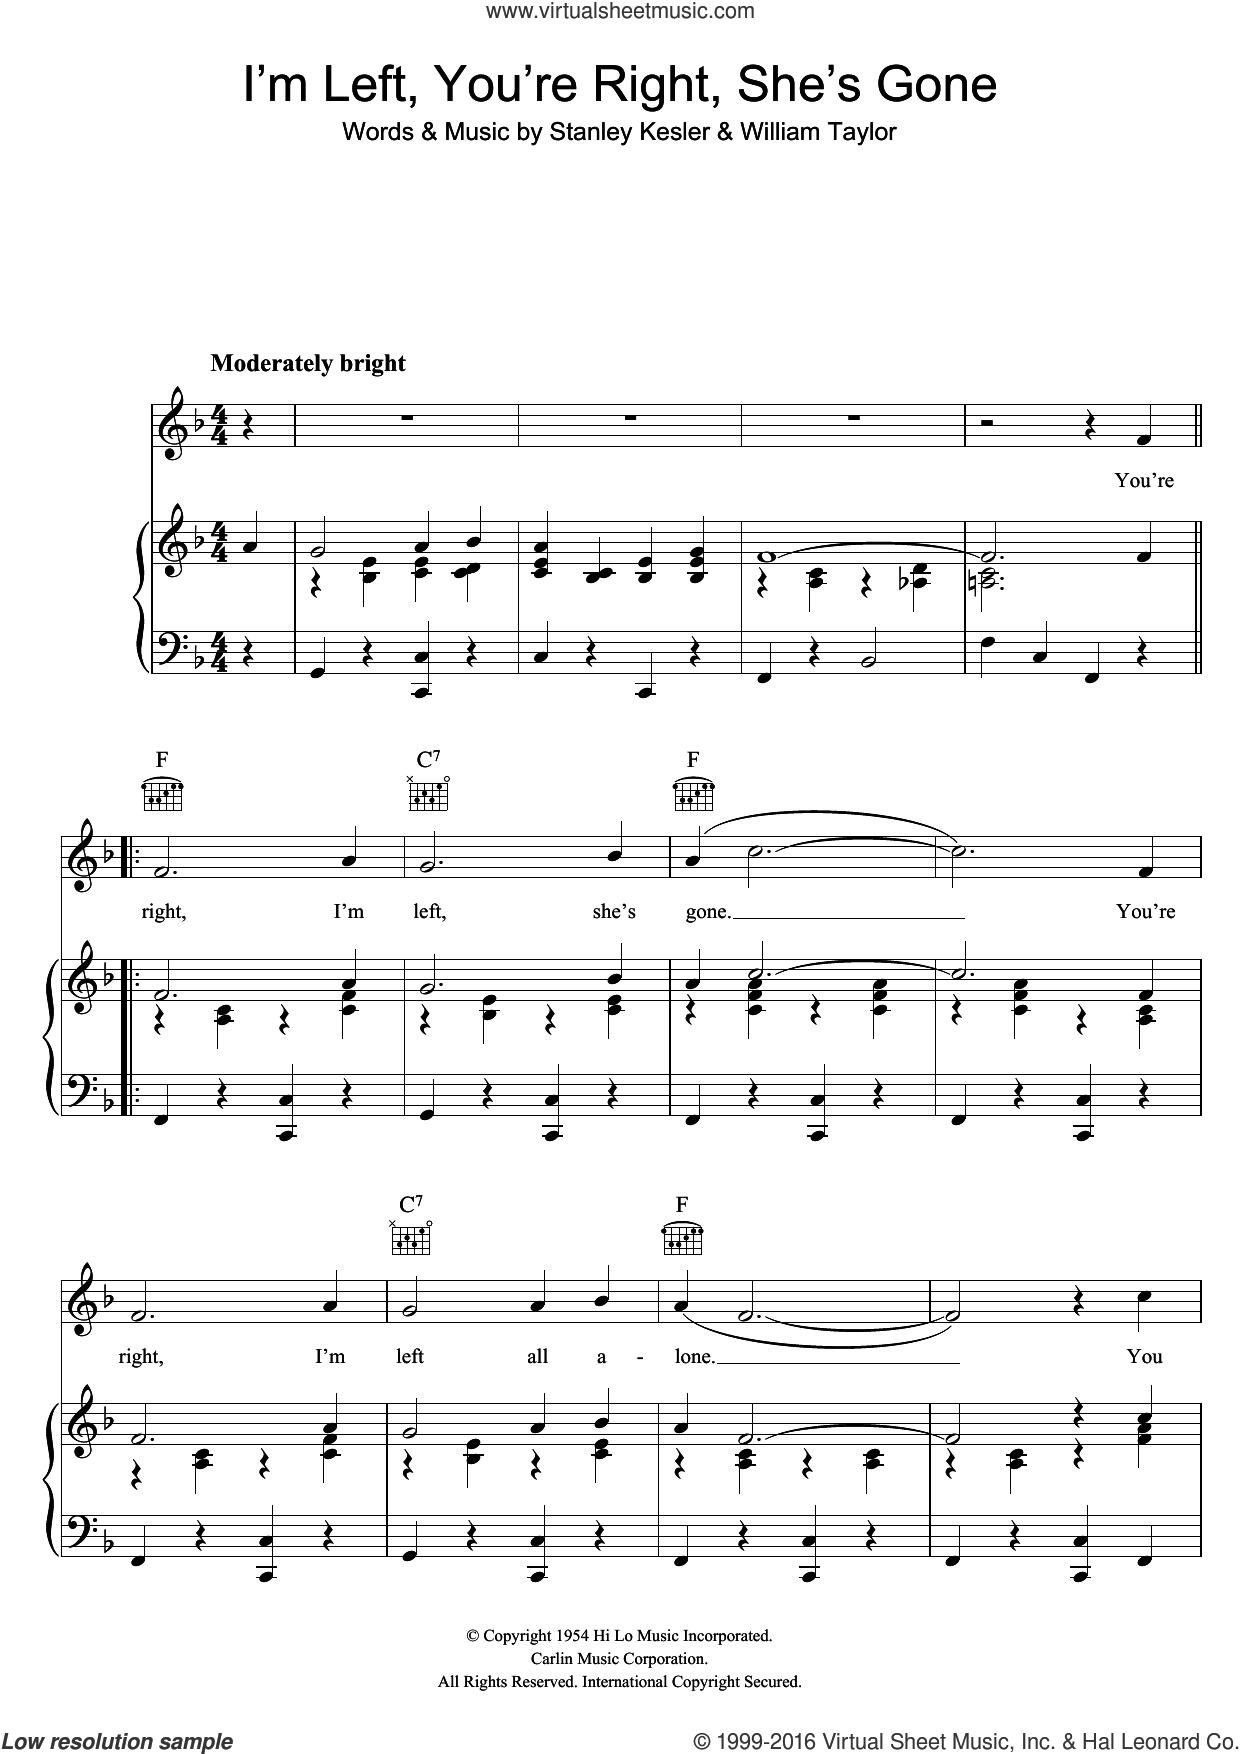 I'm Left, You're Right, She's Gone sheet music for voice, piano or guitar by Stanley Kesler and Elvis Presley. Score Image Preview.